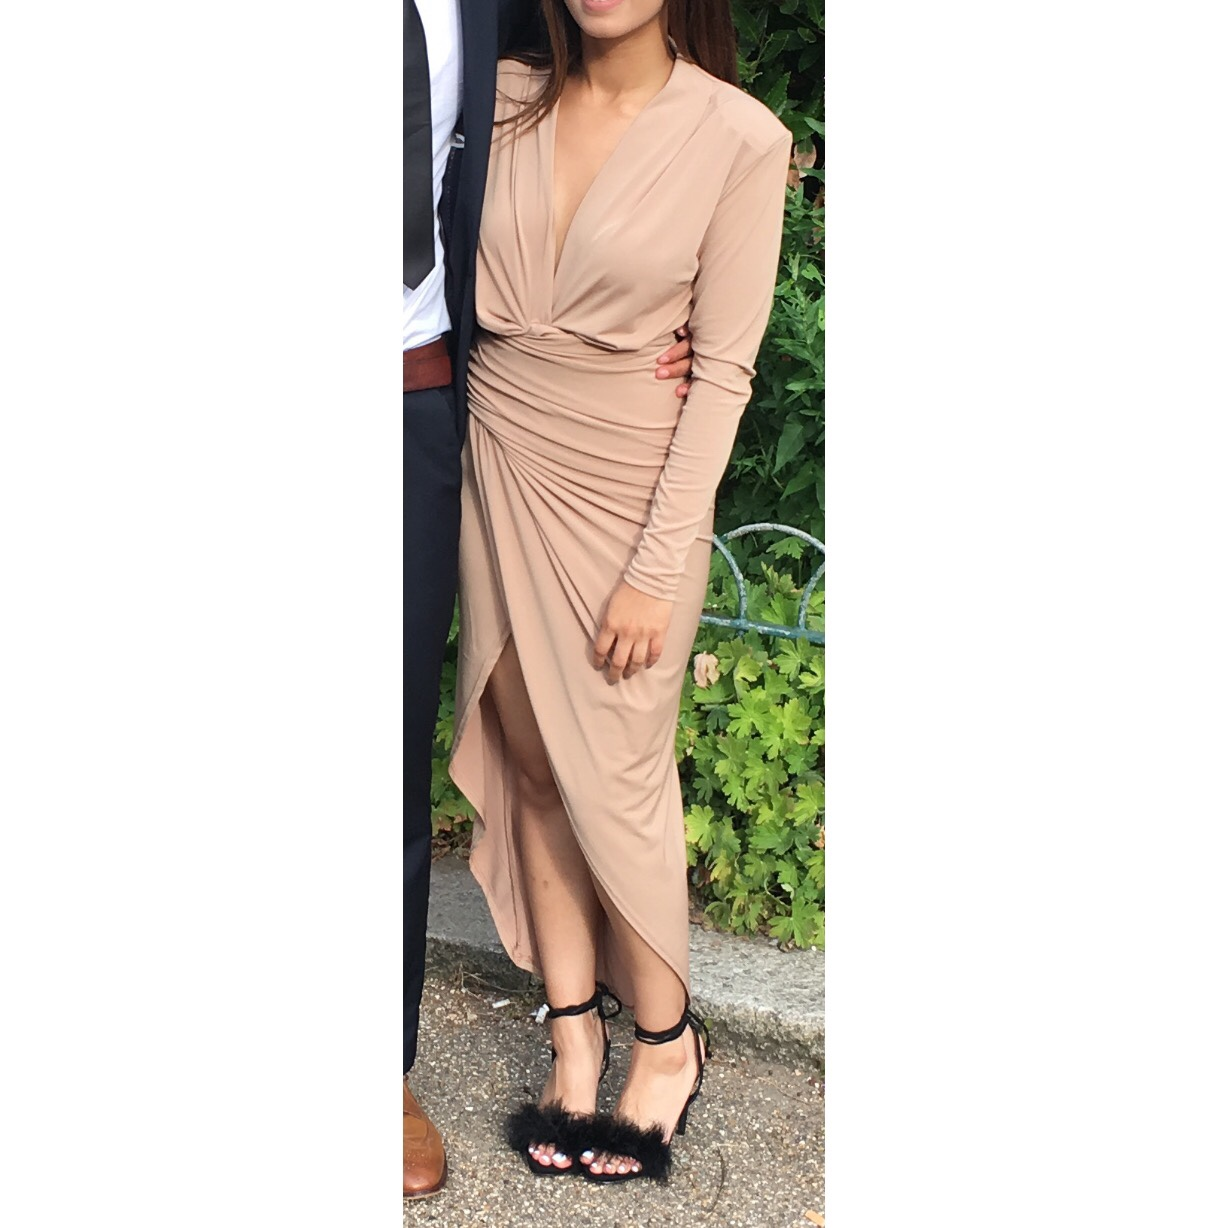 Nude Look Nude New Look Asymmetric Dress, Very Flattering!... - Depop